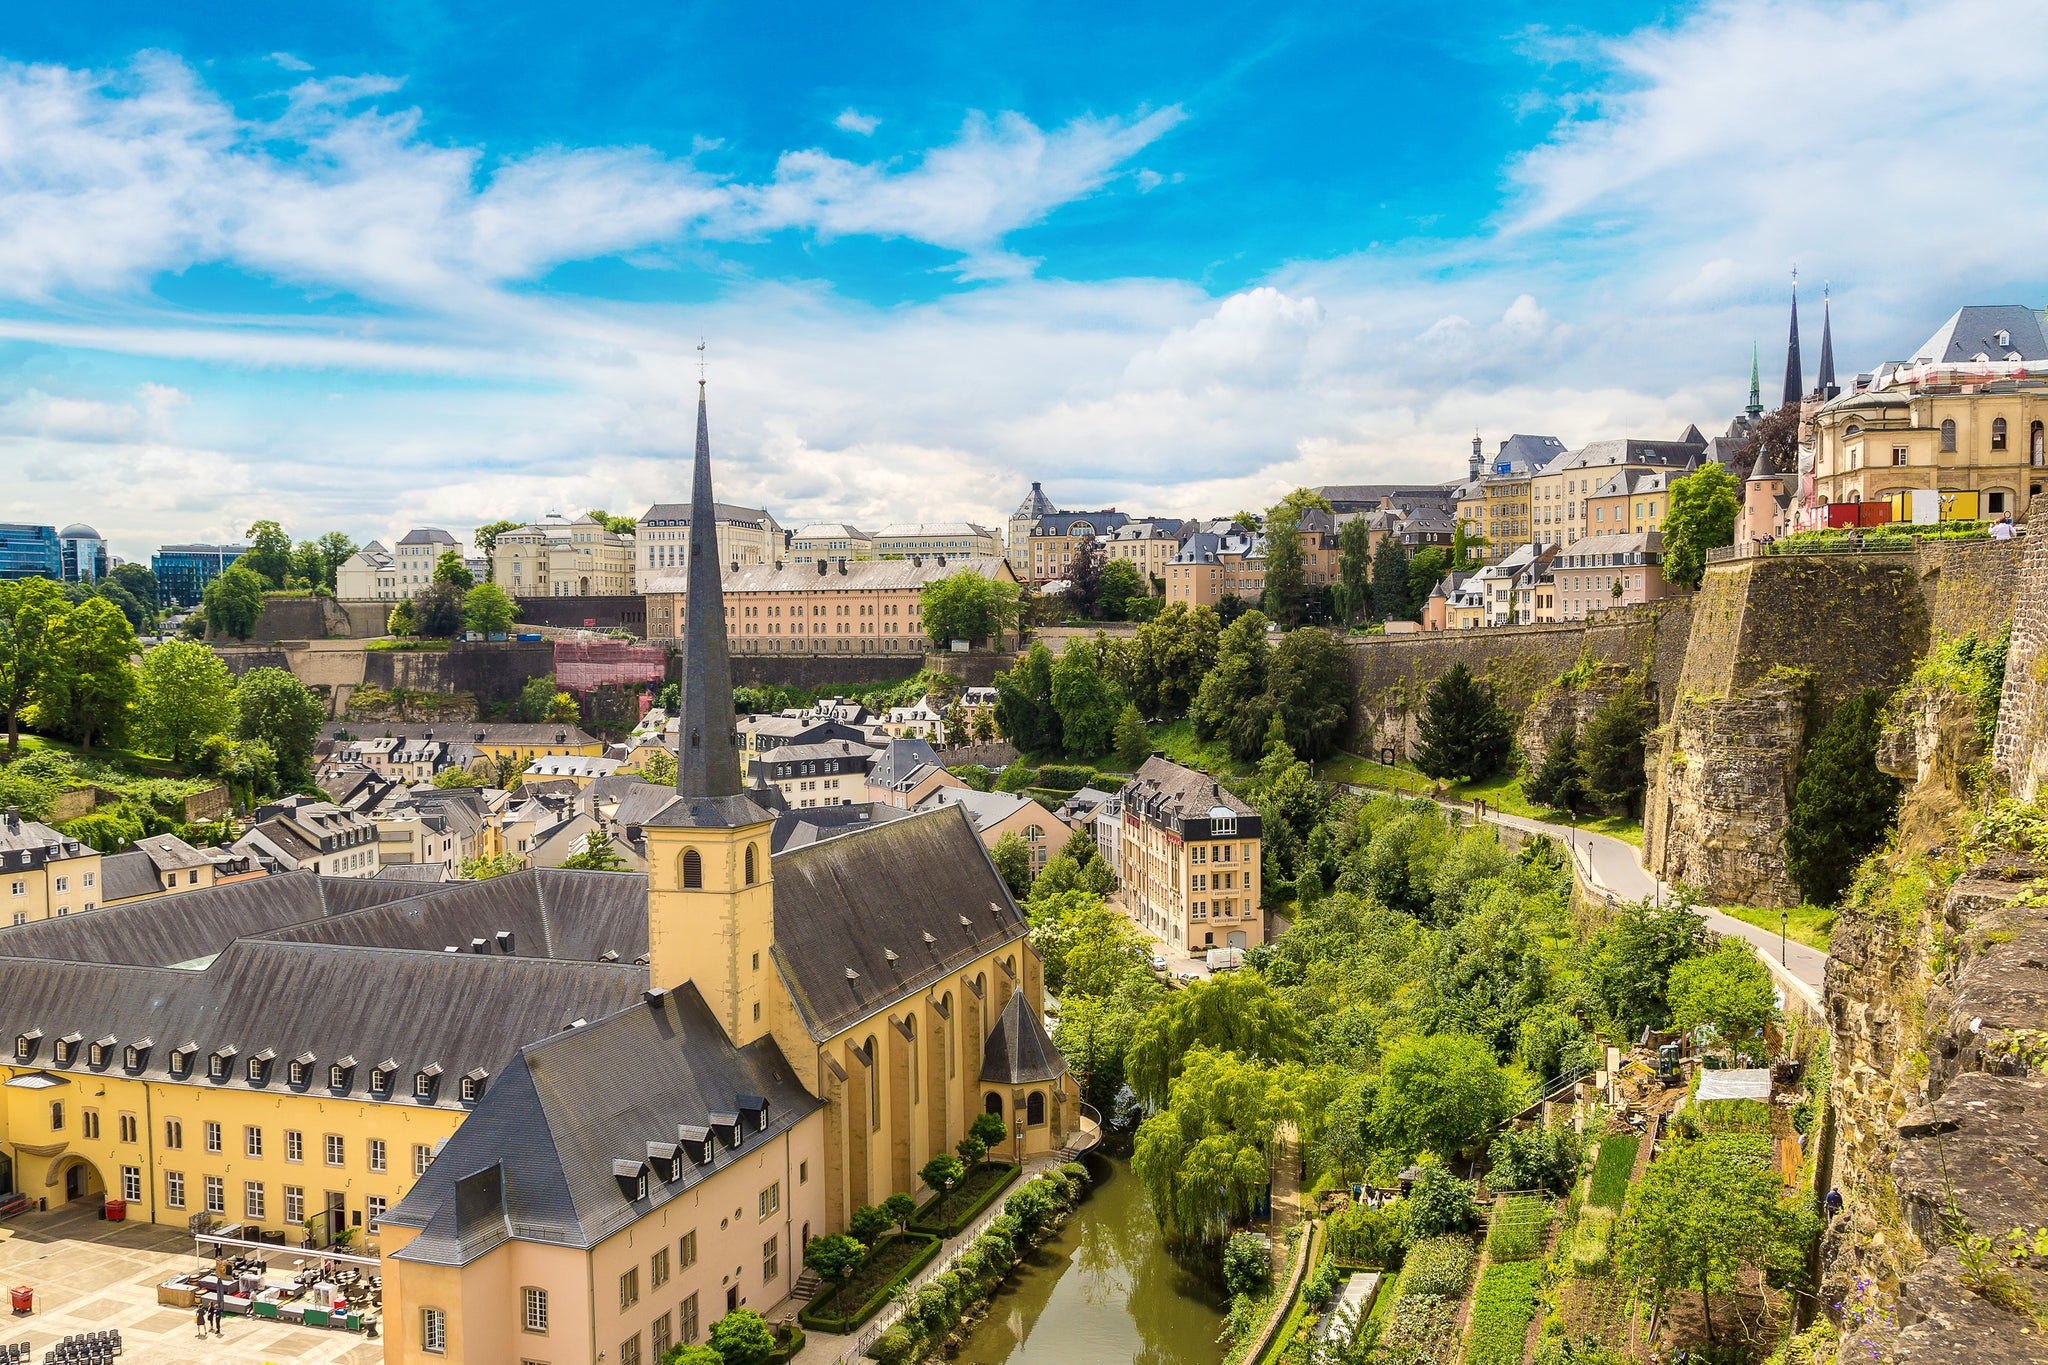 Photo of Luxembourg City, Luxembourg from overhead. A large, yellow building with two courtyards and a tower on its right side extending to a point resembling the tower of a church is situated closest to the viewer or photographer.  Various other buildings surround the large yellow building both behind and beside it. A large castle defensive wall separates the far right side of the page and extends into the city, away from the photographer. Beautiful, colorful European style renaissance buildings line the streets and are met with modern high rise office buildings in the far left corner of the image. The sky is light blue with wispy clouds. Large bushy trees line the wall along with bright green grass. The are trees and greenery dispersed throughout the city.